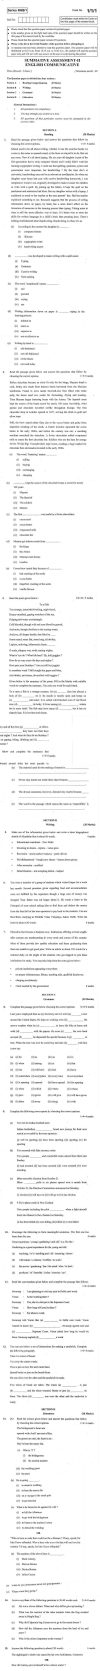 CBSE Class X Previous Year Question Papers 2011: English Communicative Image by AglaSem